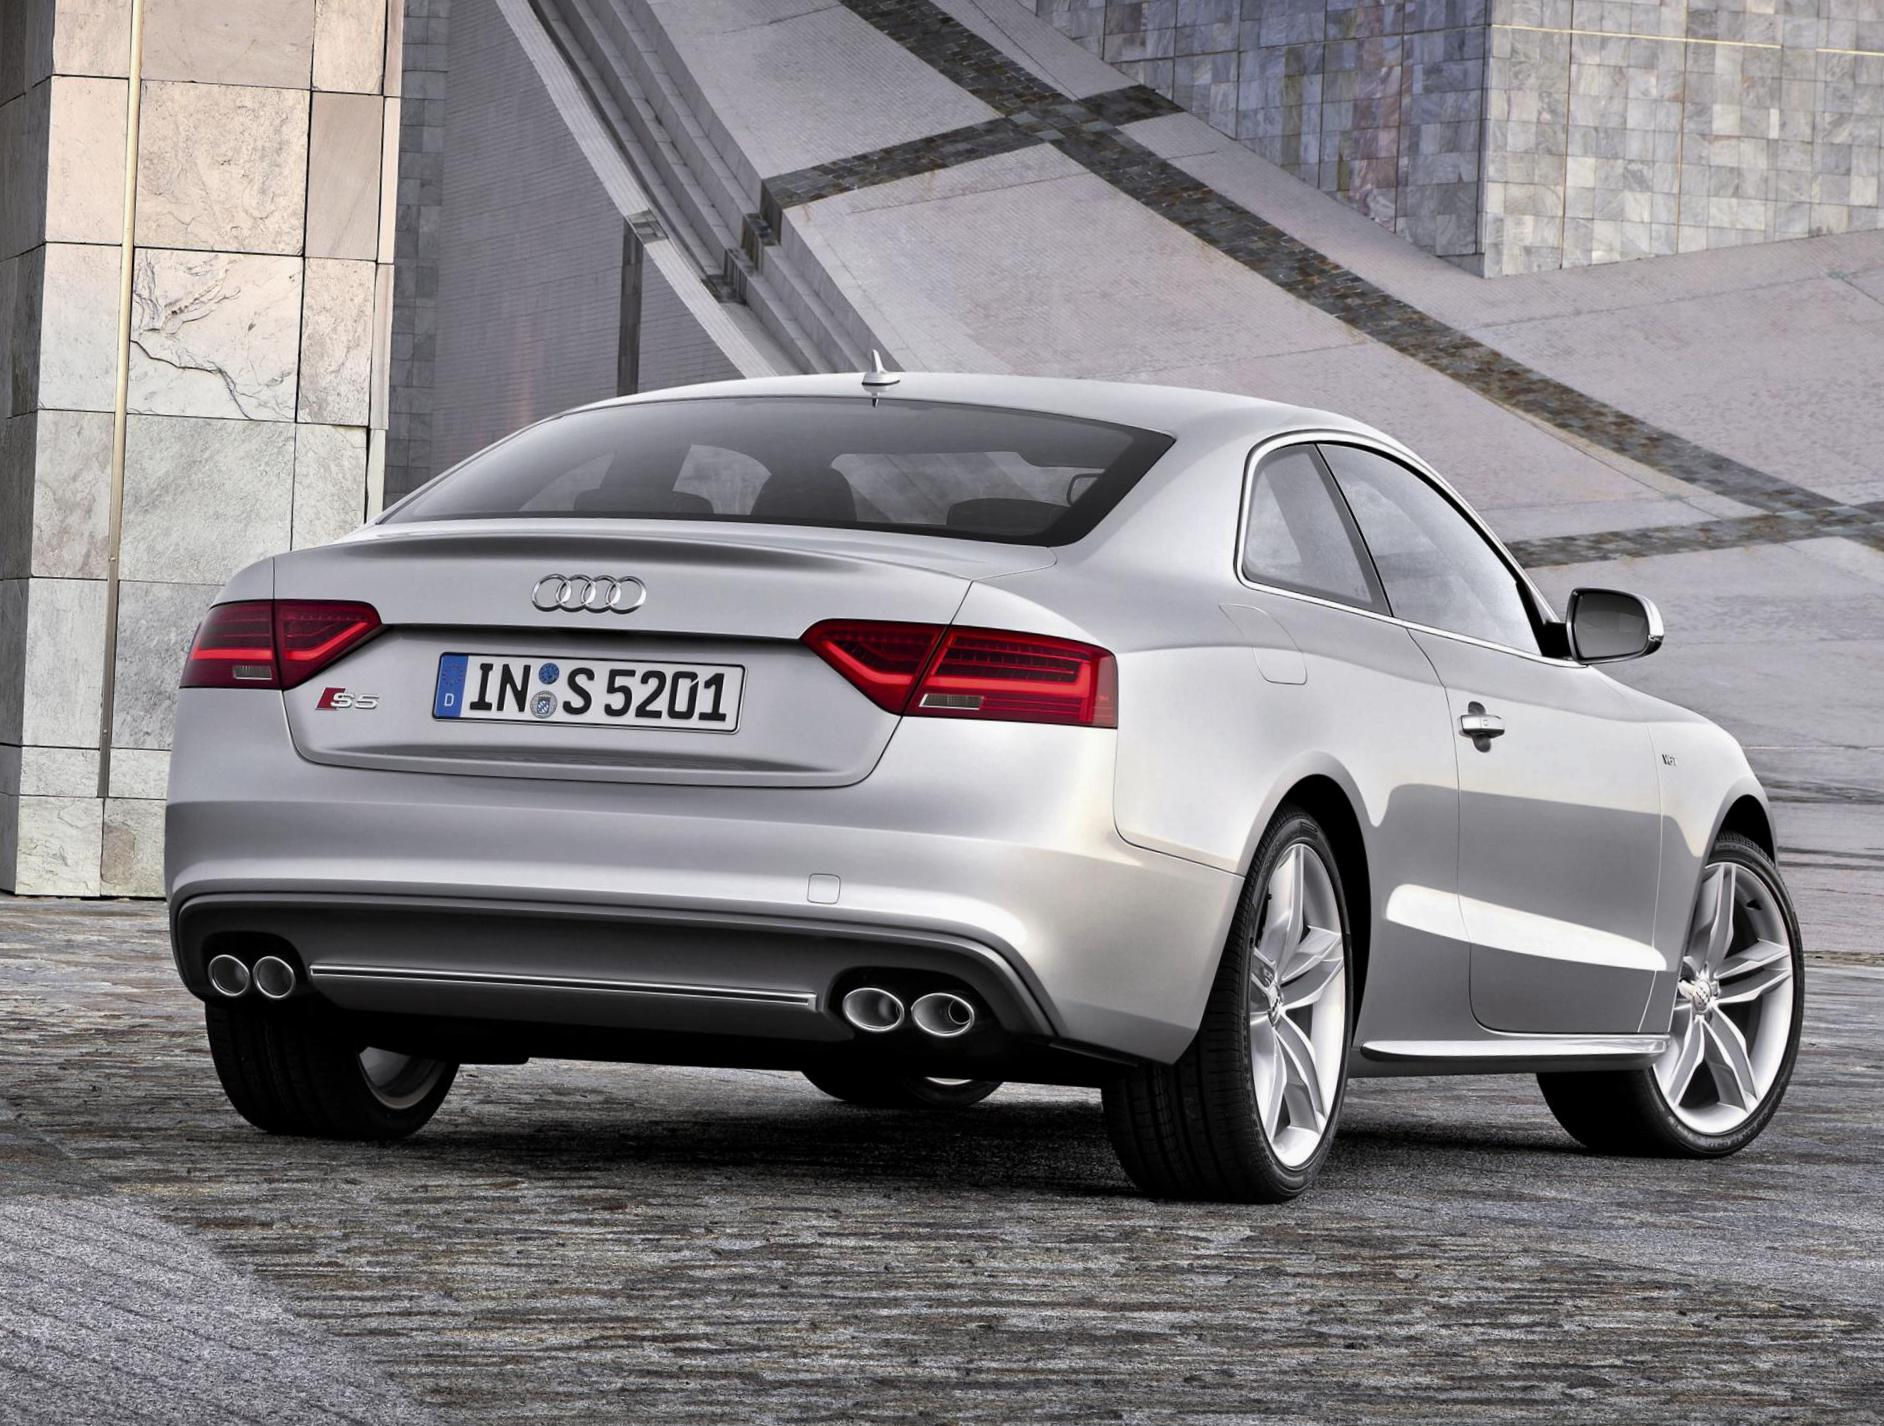 S5 Coupe Audi used 2004